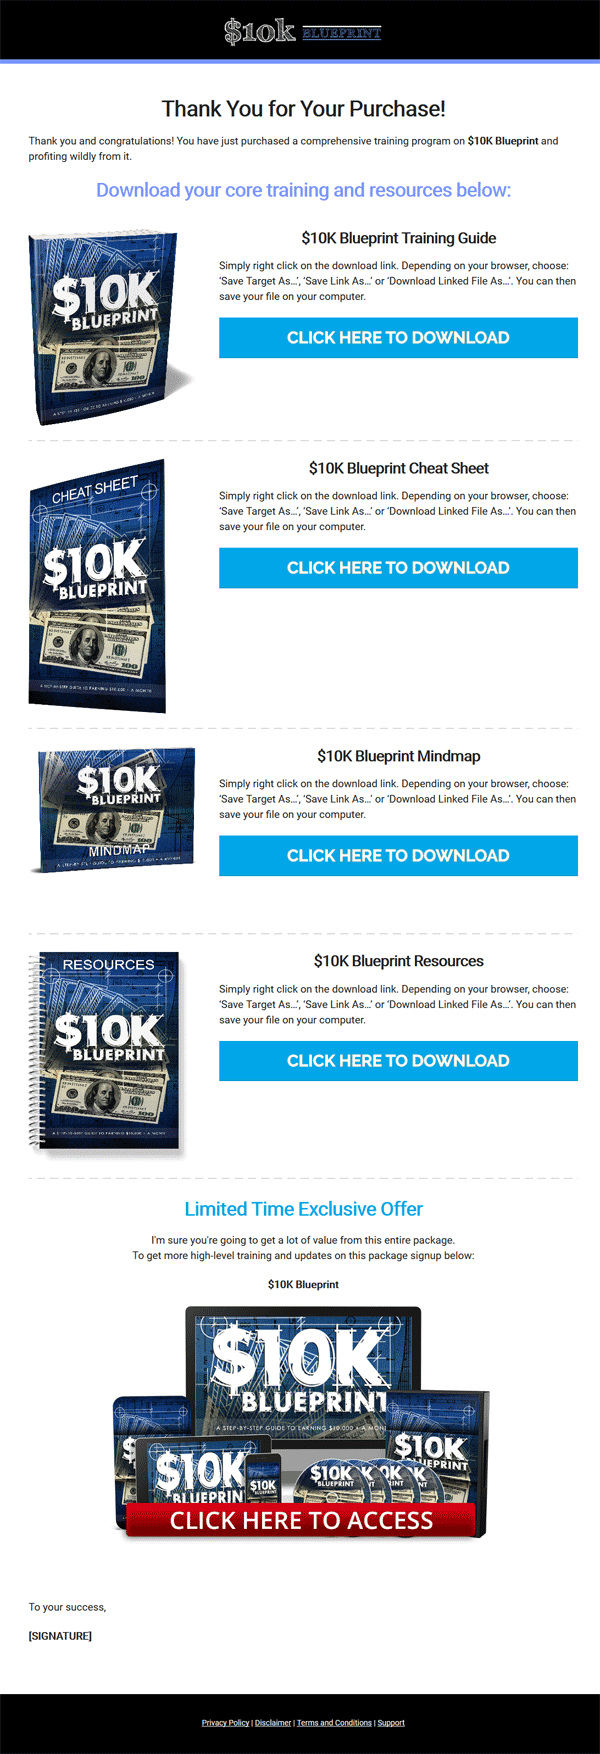 10k blueprint ebook and videos with master resale rights 10k malvernweather Images